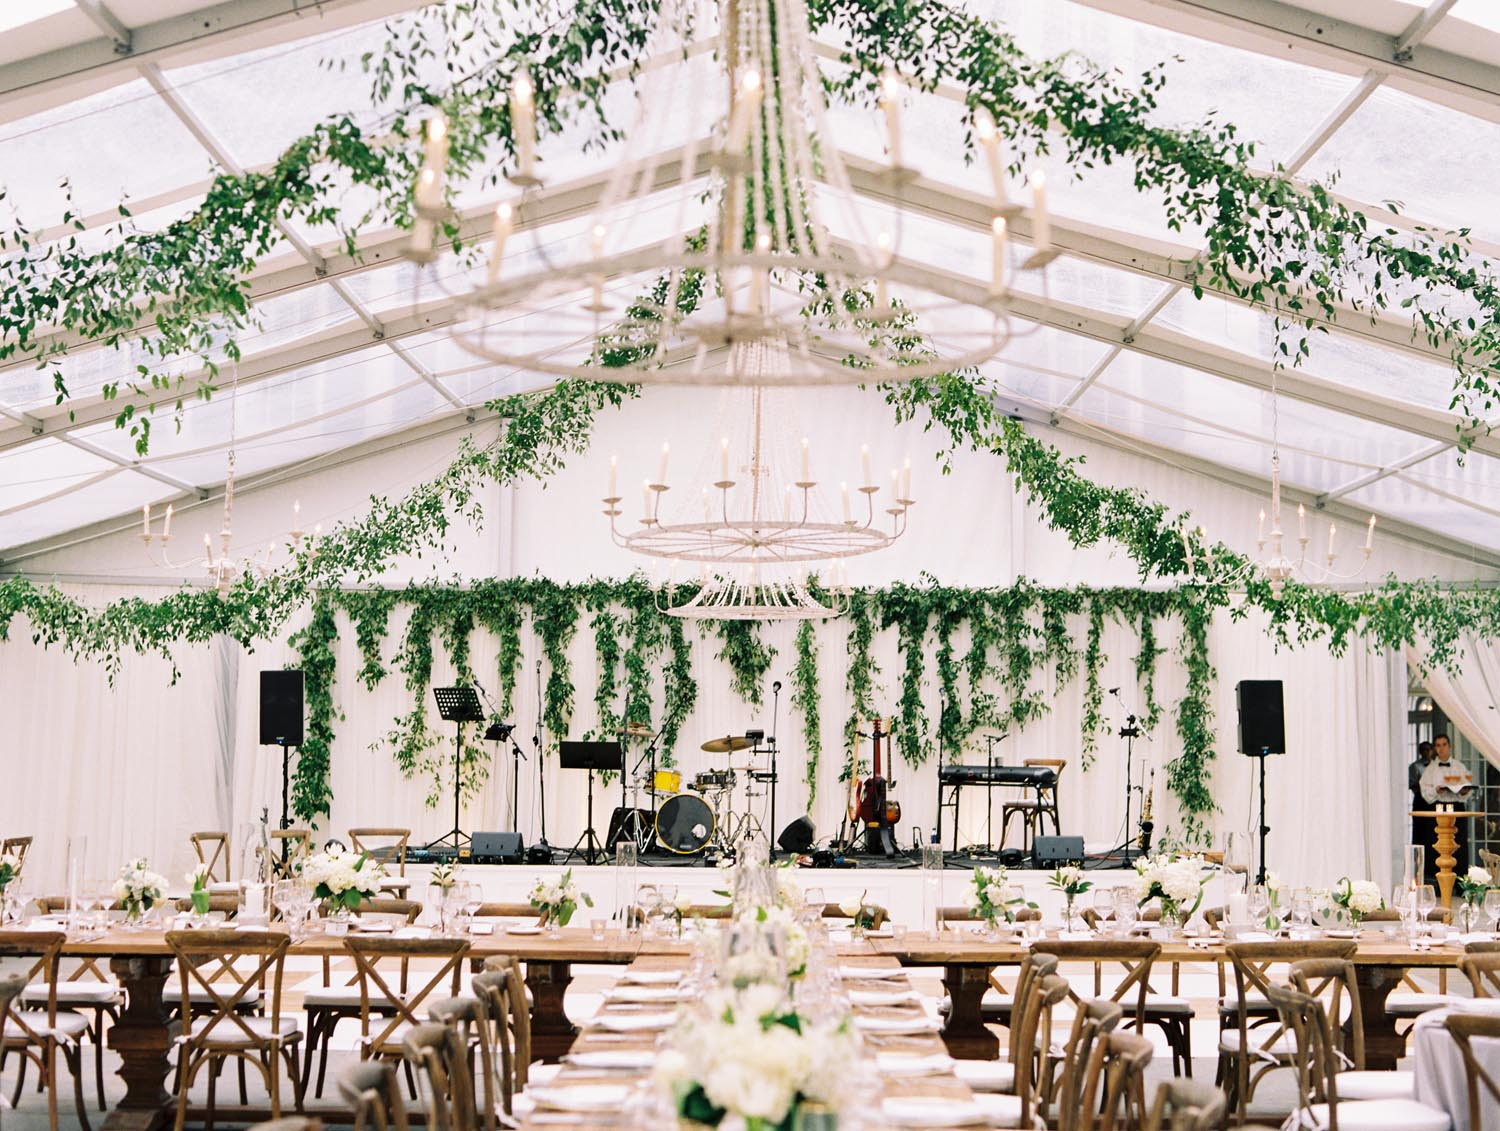 From the clear top tent dripping in greenery to the clean lines of fabric hugging the perimeter of the space, this outdoor wedding was the epitome of southern sophistication. A Charleston Bride.